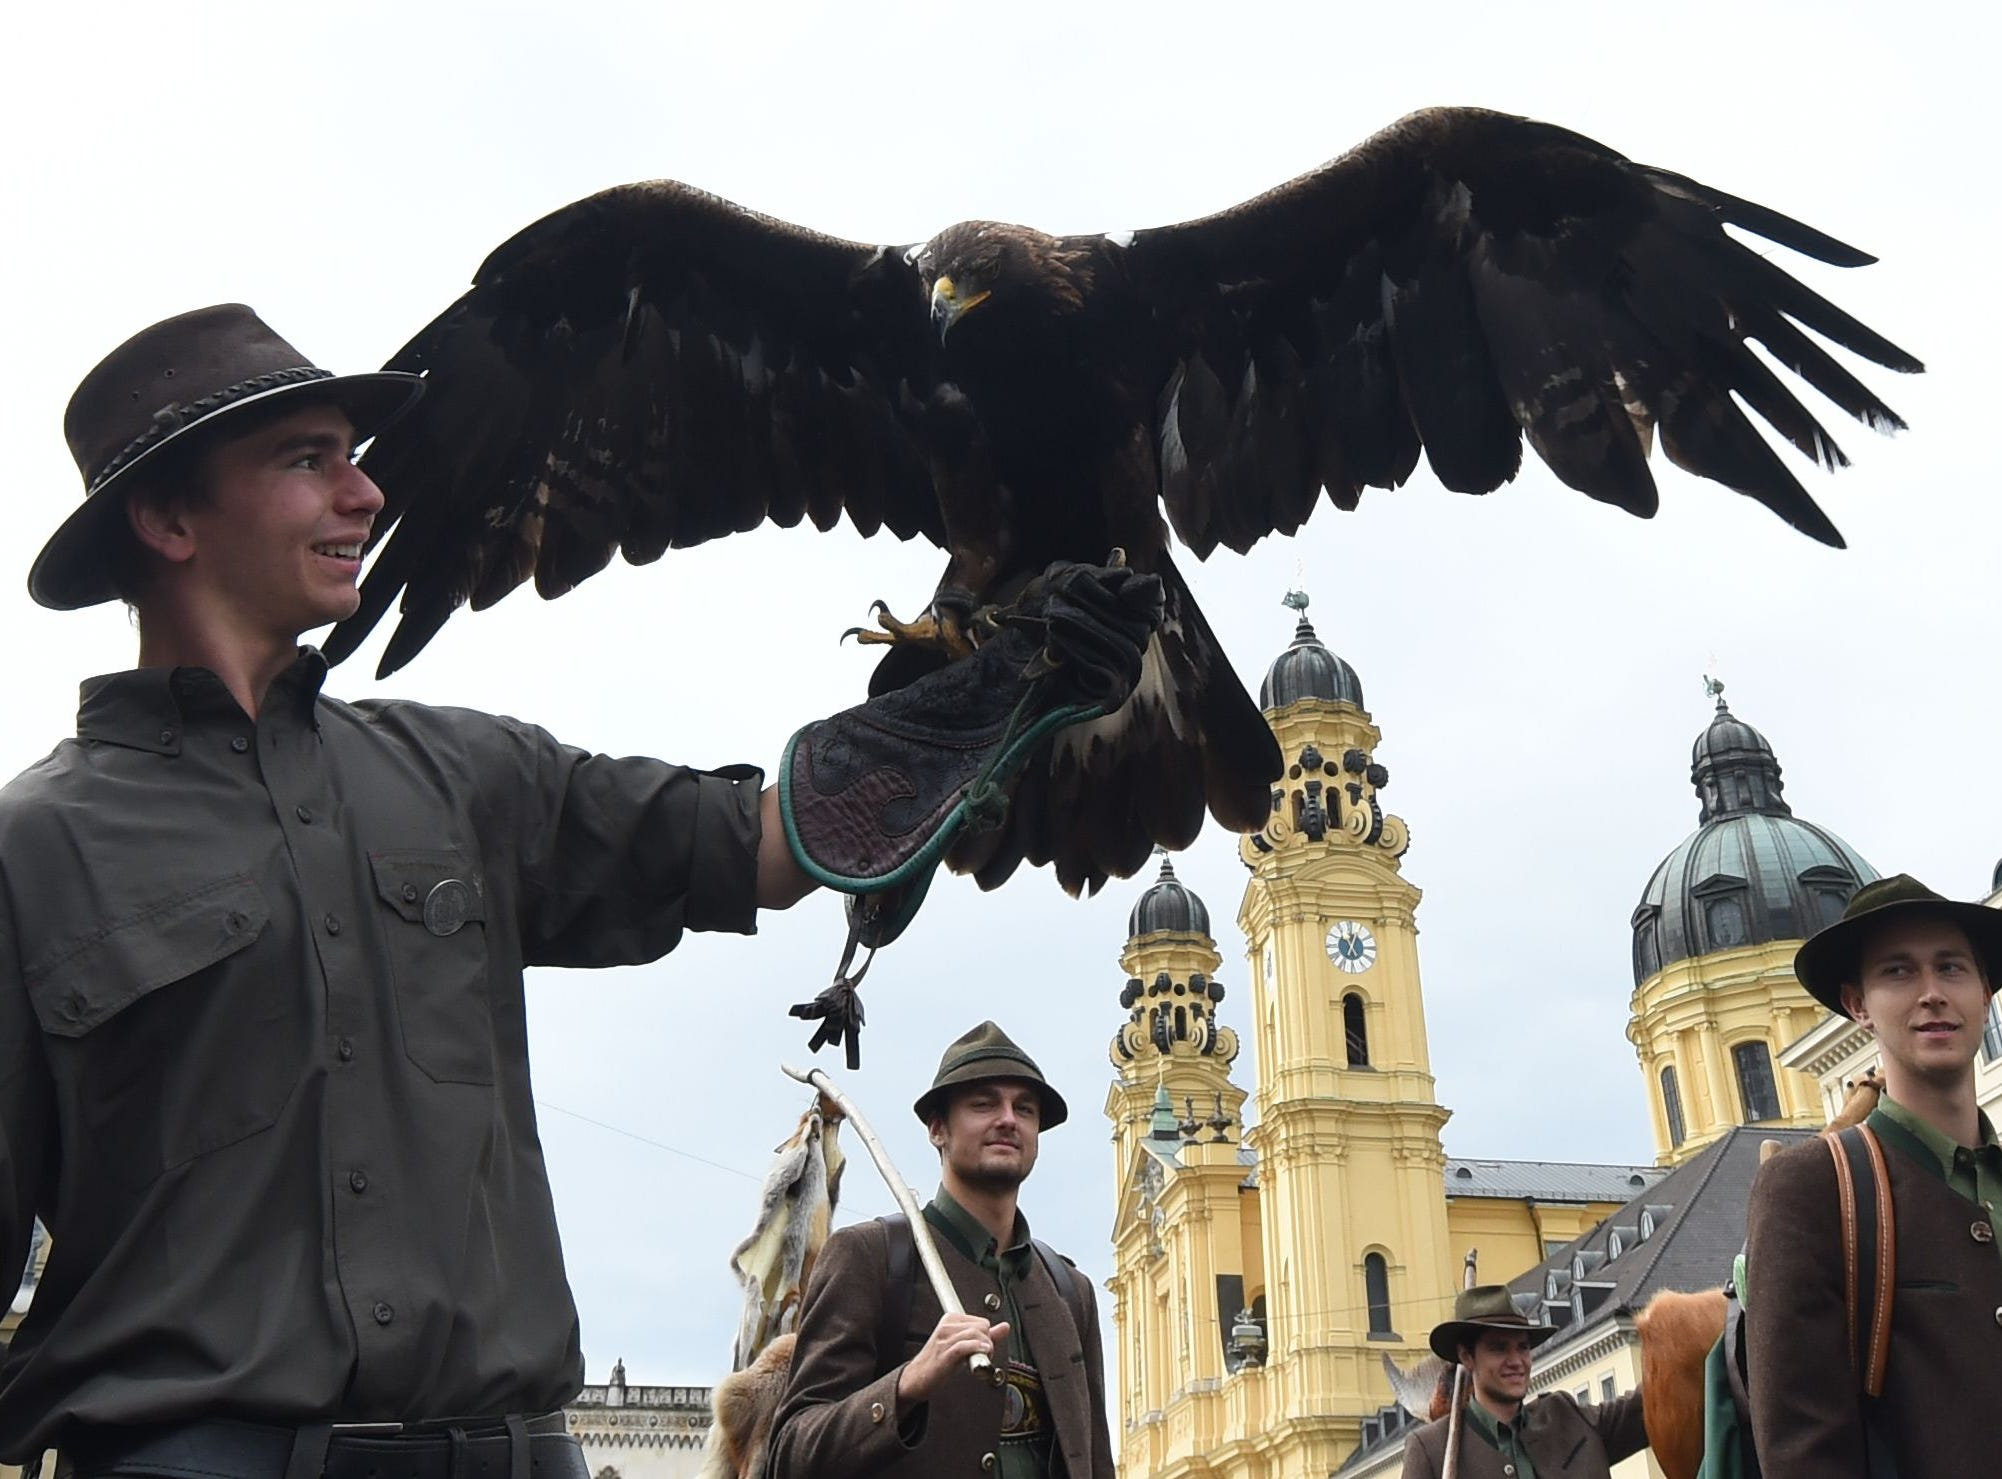 Huntsmen take part in the traditional costume and riflemen parade on the second day of the 185th Oktoberfest beer festival on Sept. 23, 2018 in Munich, southern Germany. The world's biggest beer festival runs until October 7, 2018.